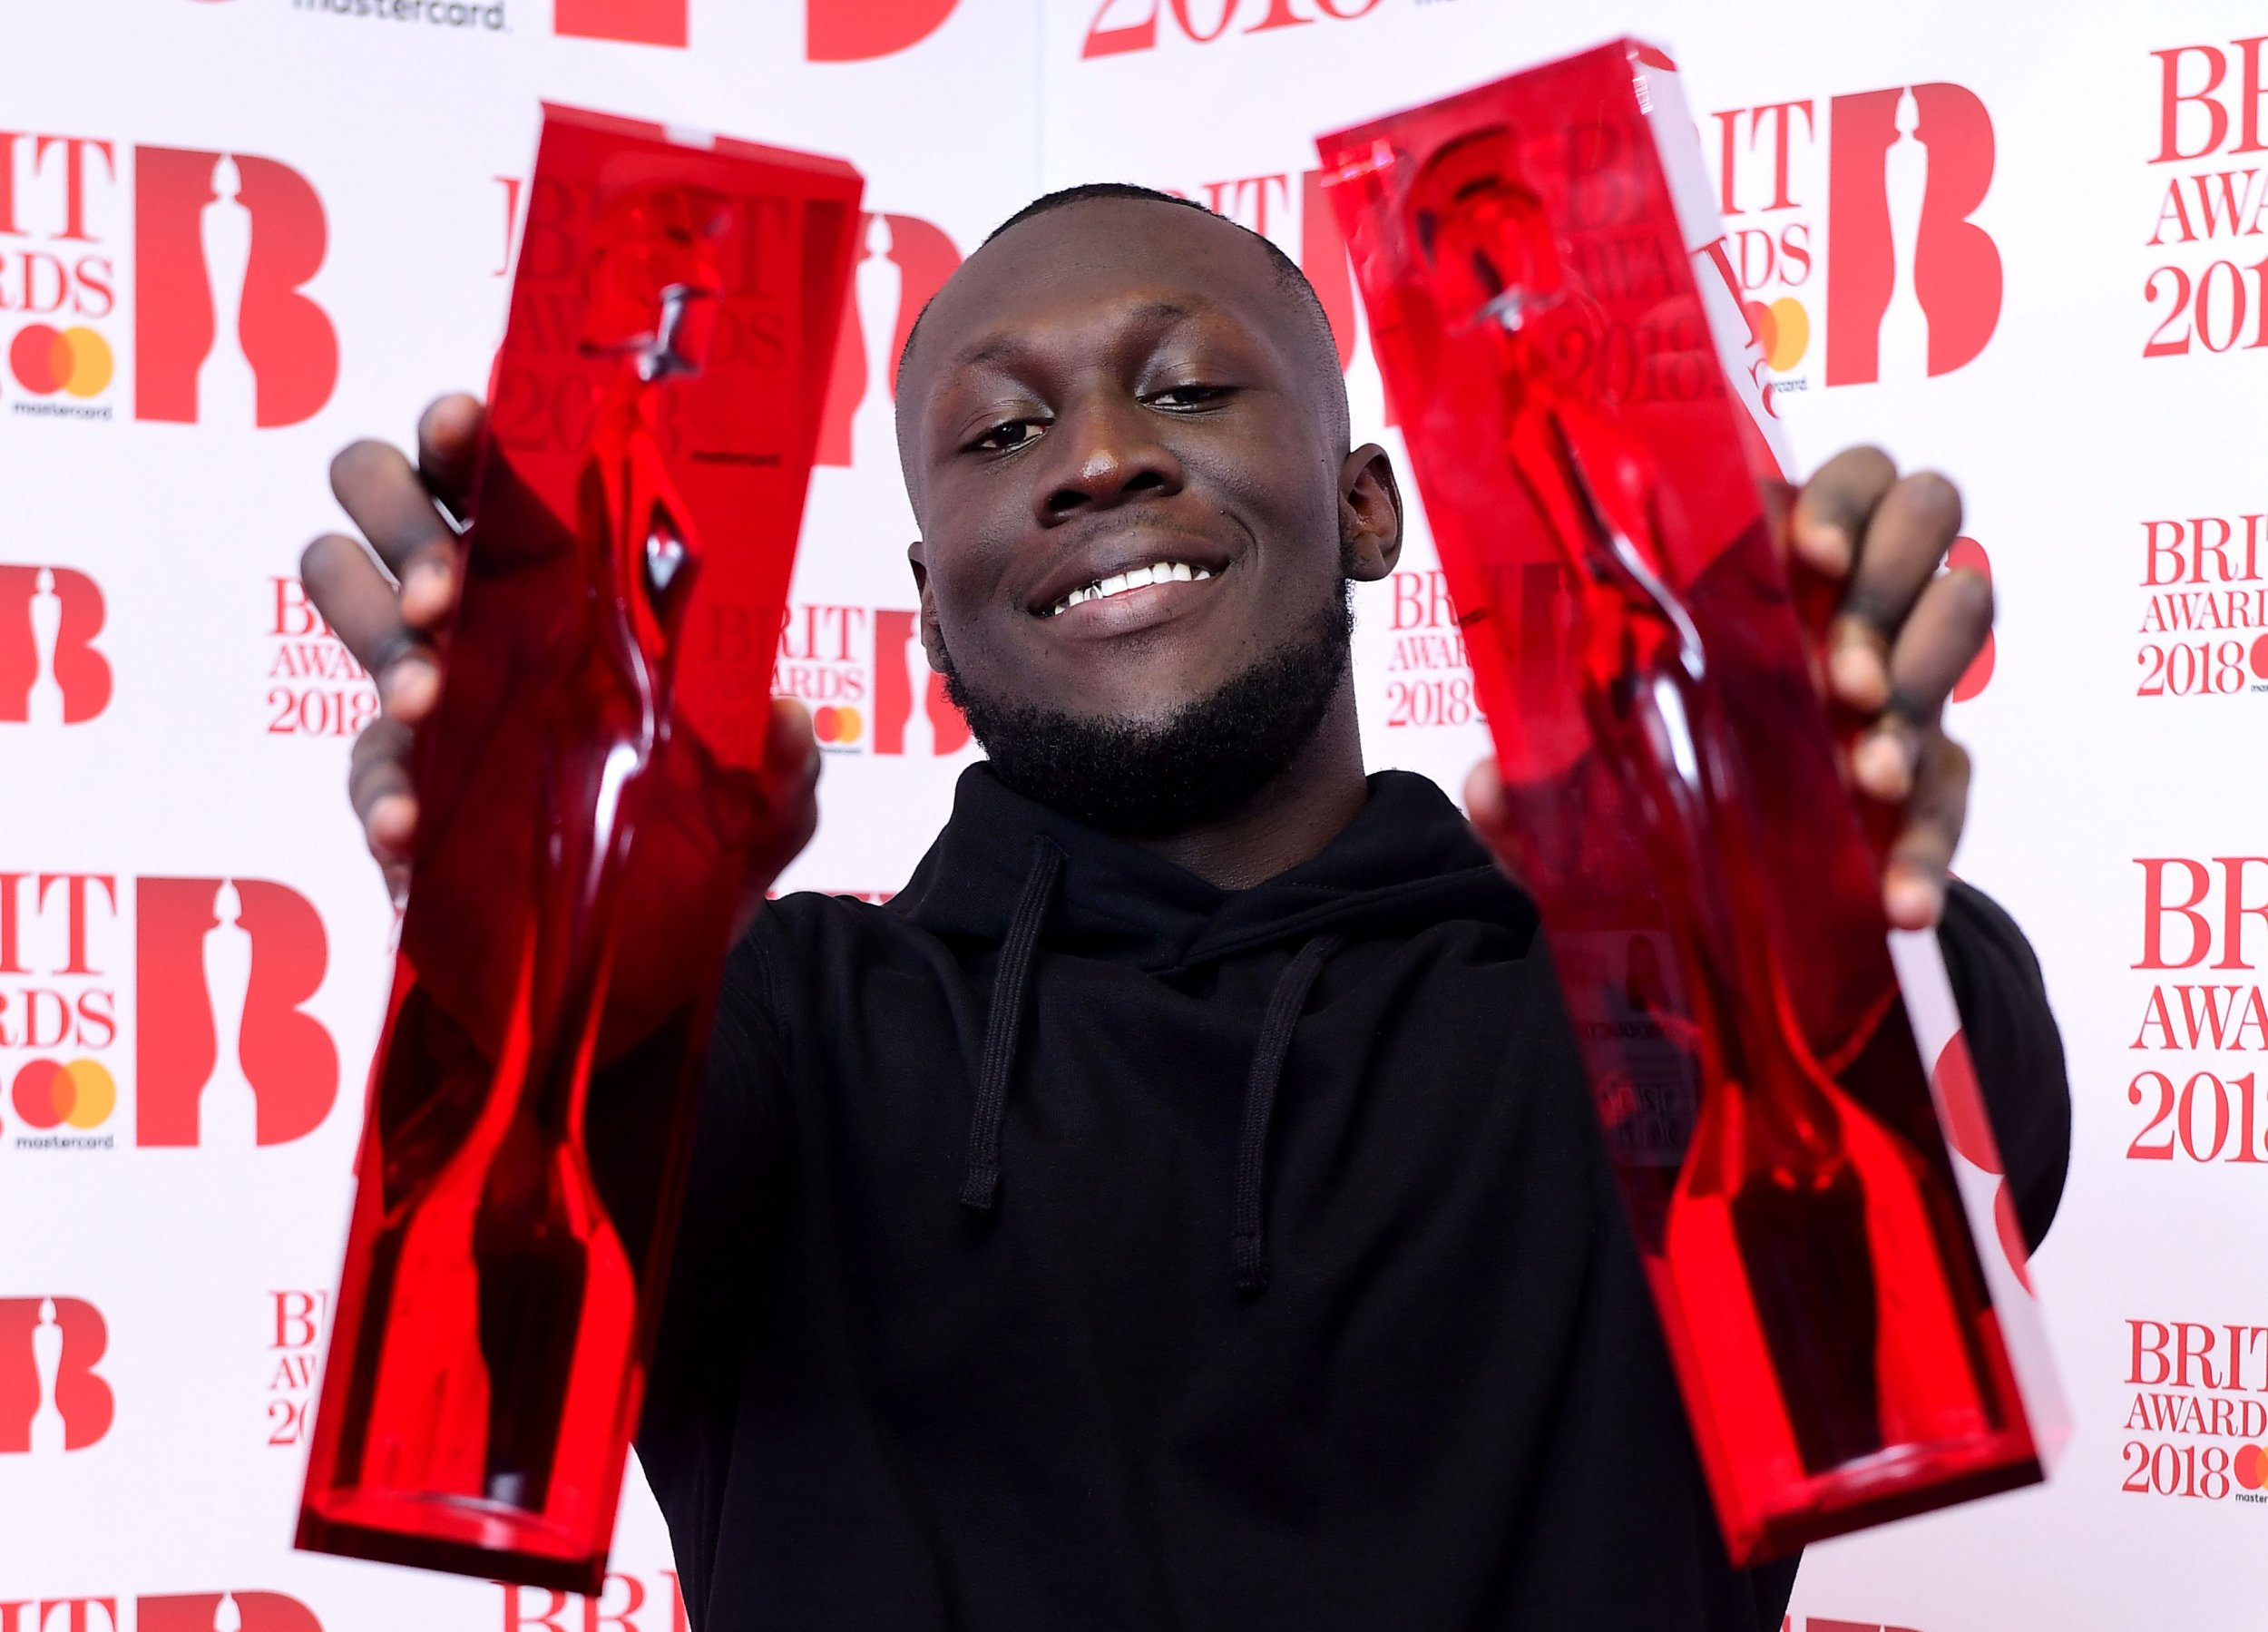 Stormzy's Spotify streaming figures double after powerful performance at Brit Awards